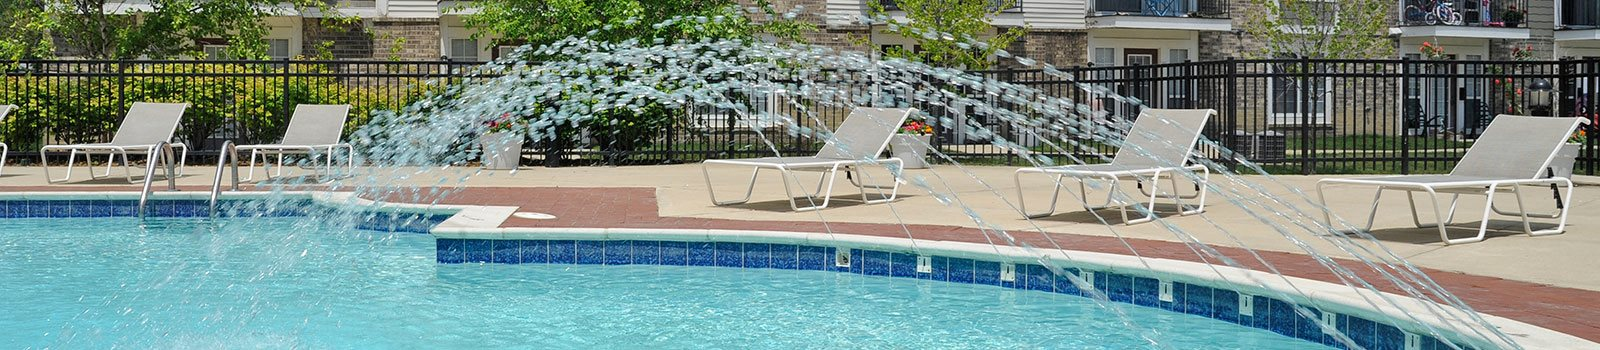 Pool Side Relaxing Area at Westlake Apartments, Belleville, 48111